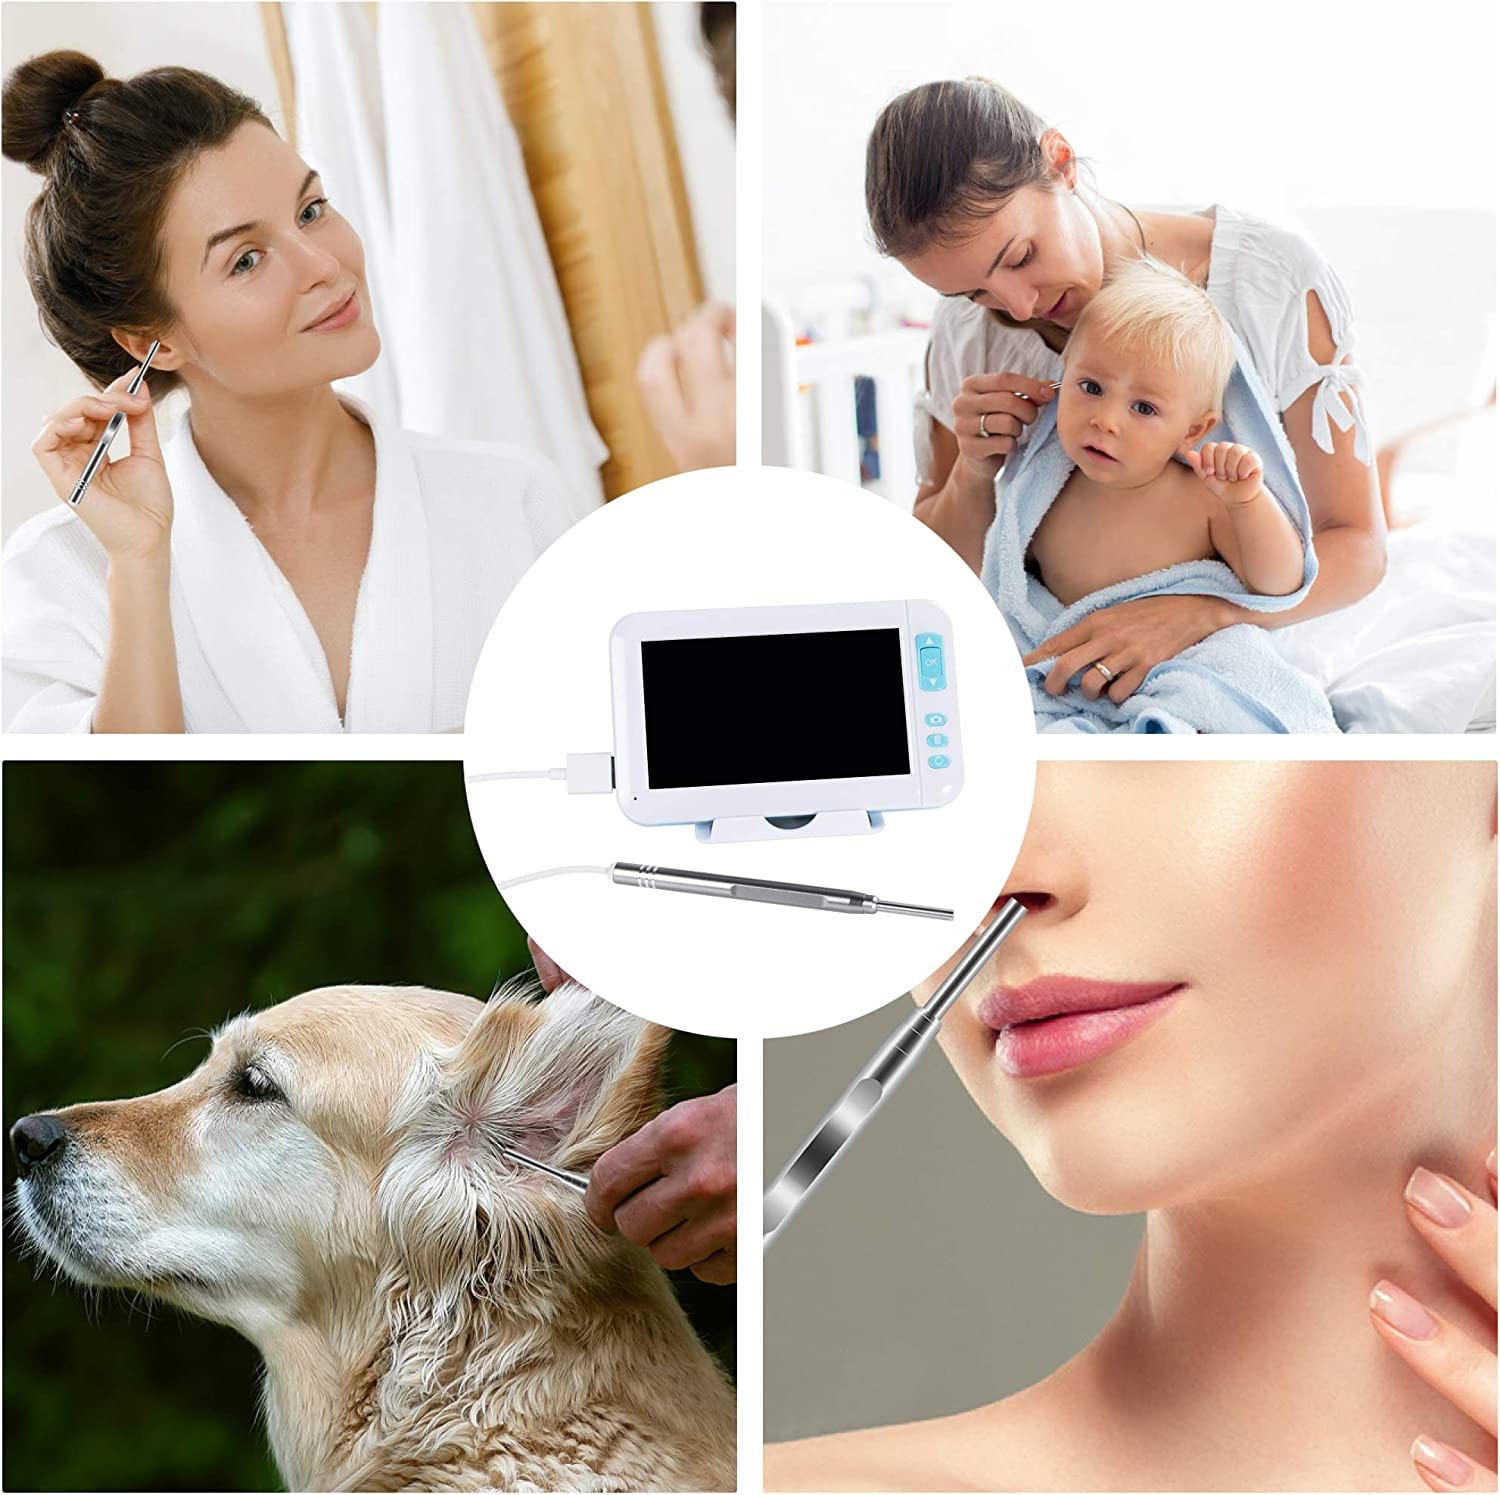 ScopeAround 3.9mm Ear Scope Otoscope HD Camera with 6 LED Lights Kalawen Digital Otoscope with 4.3 Inch Screen Ear Microscope Inspection Camera with Wax Removal Tool for Adults and Kids